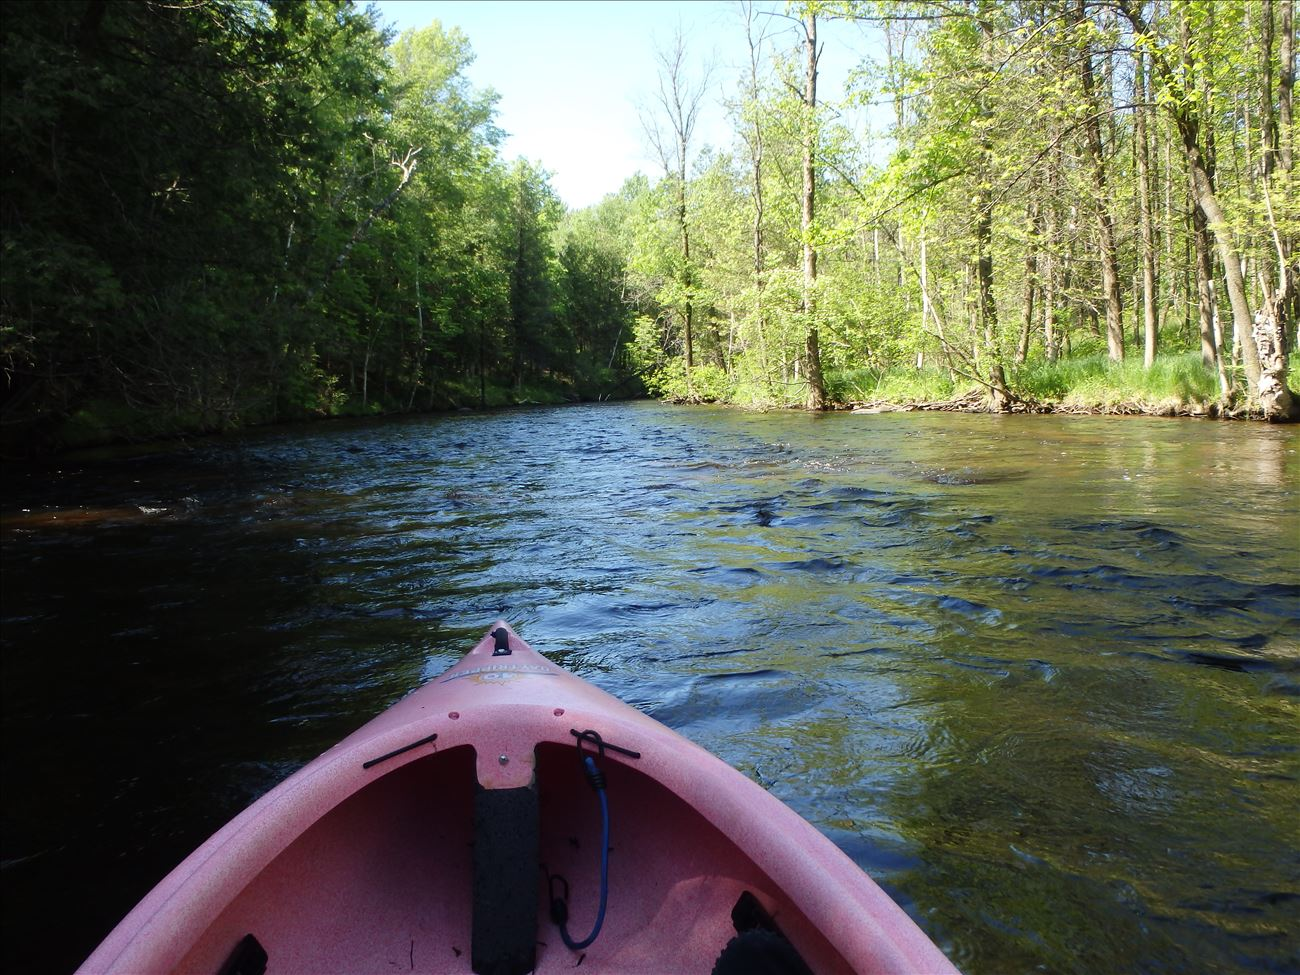 Paddling on the White River